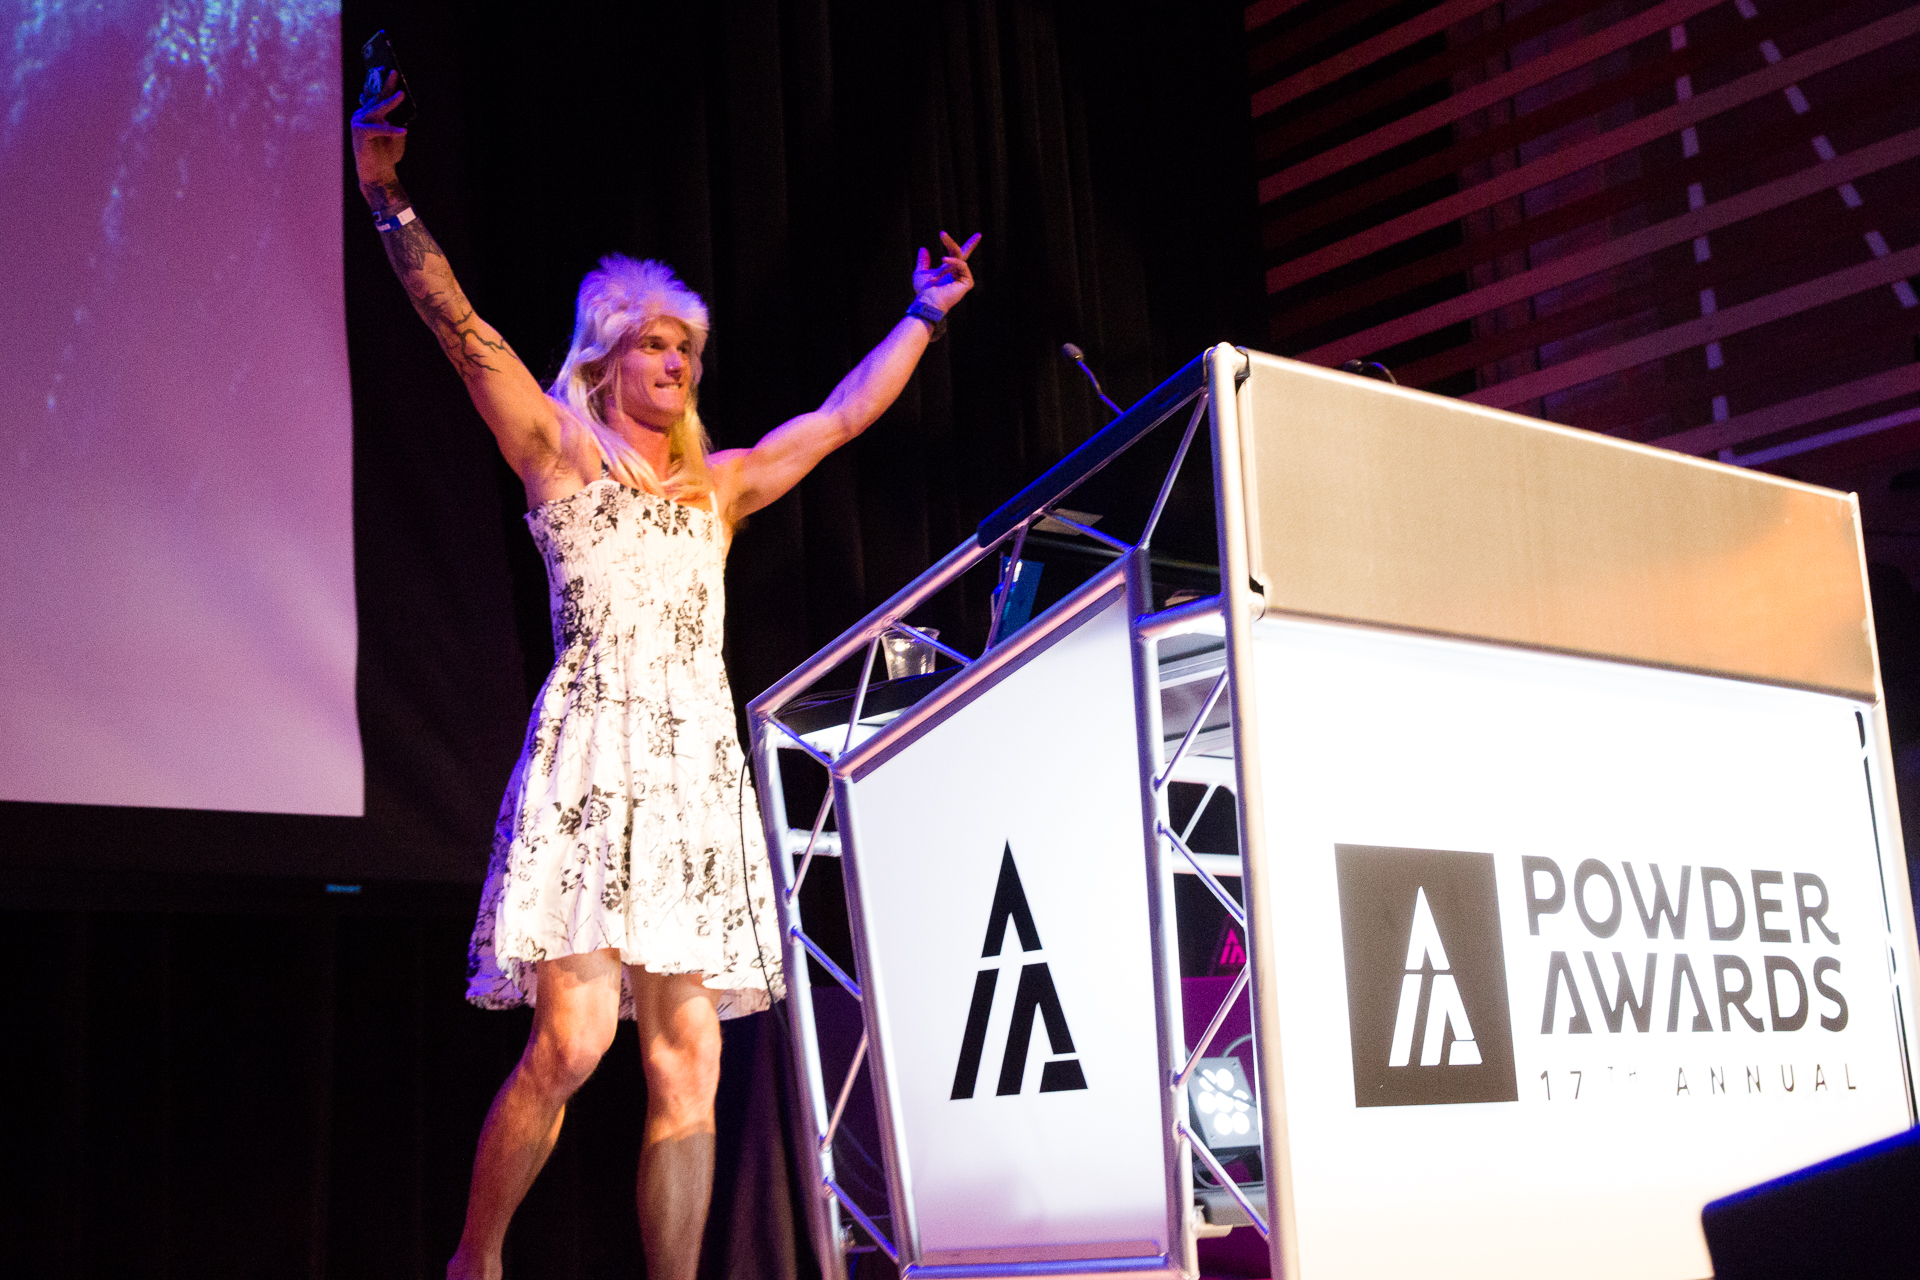 Angel Collinson looked a little different at the Powder Awards this year... PHOTO: David Reddick